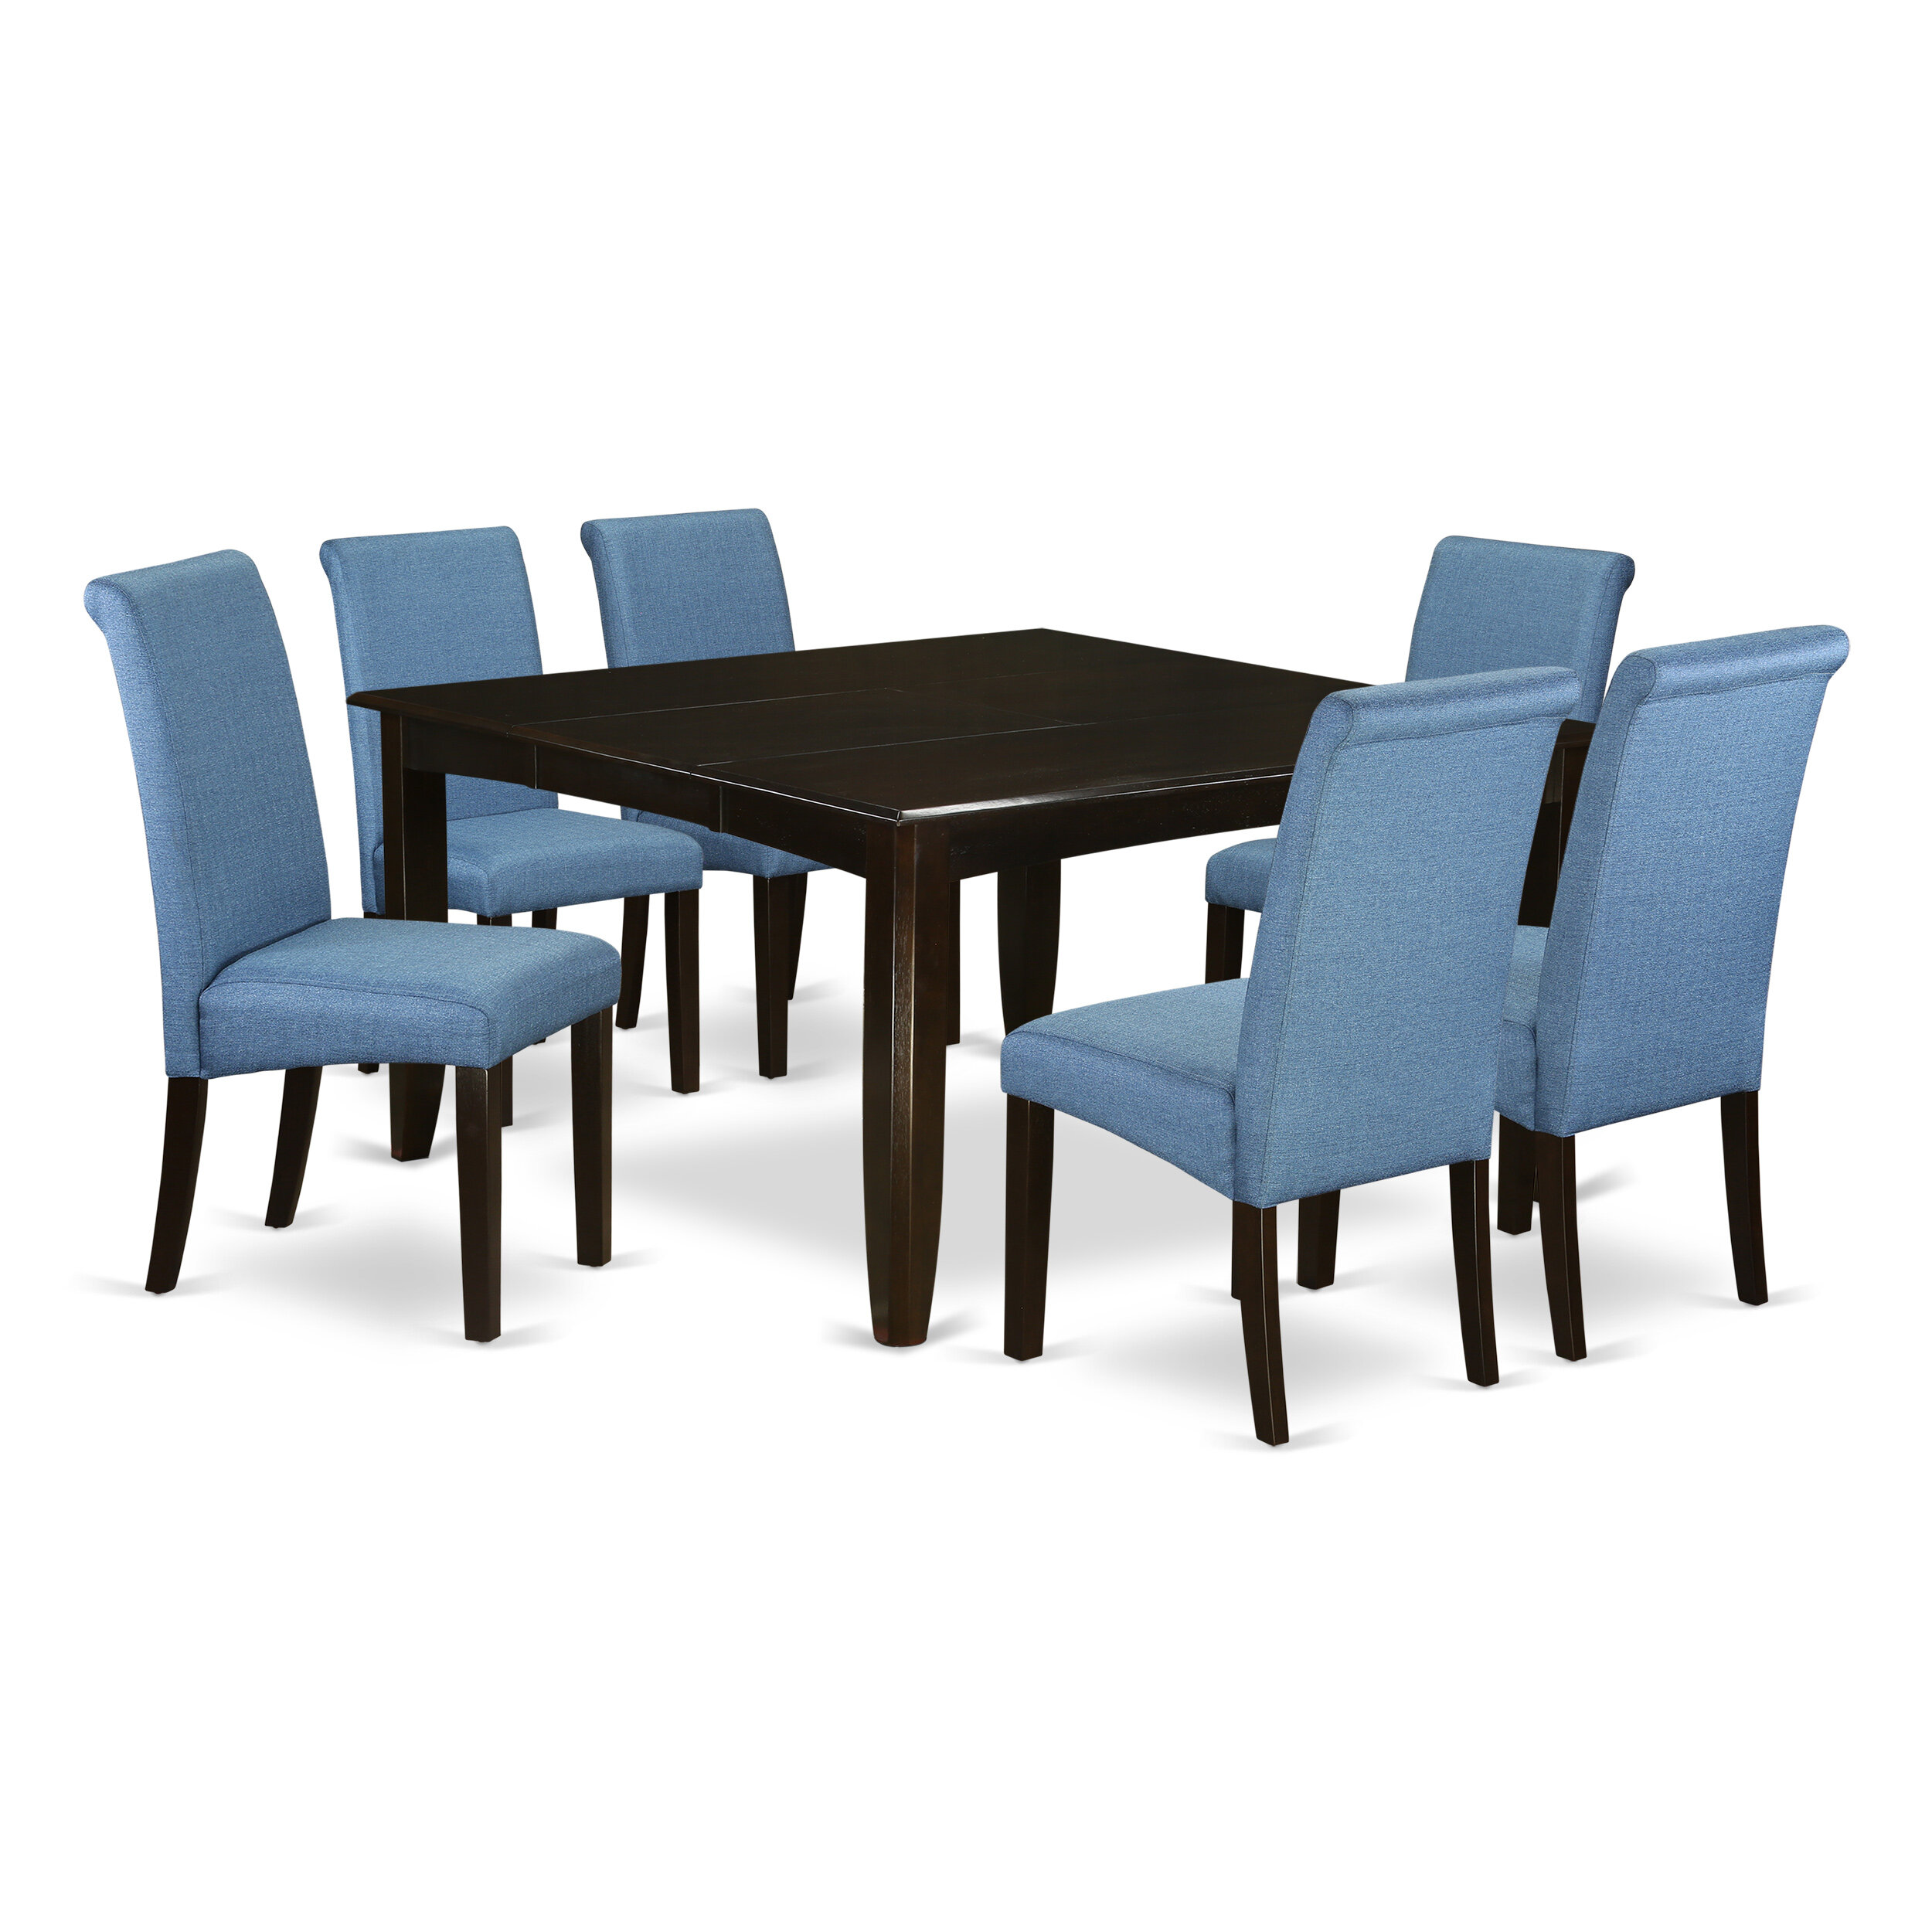 Awesome Marlene Square Kitchen Table 7 Piece Extendable Solid Wood Dining Set Theyellowbook Wood Chair Design Ideas Theyellowbookinfo